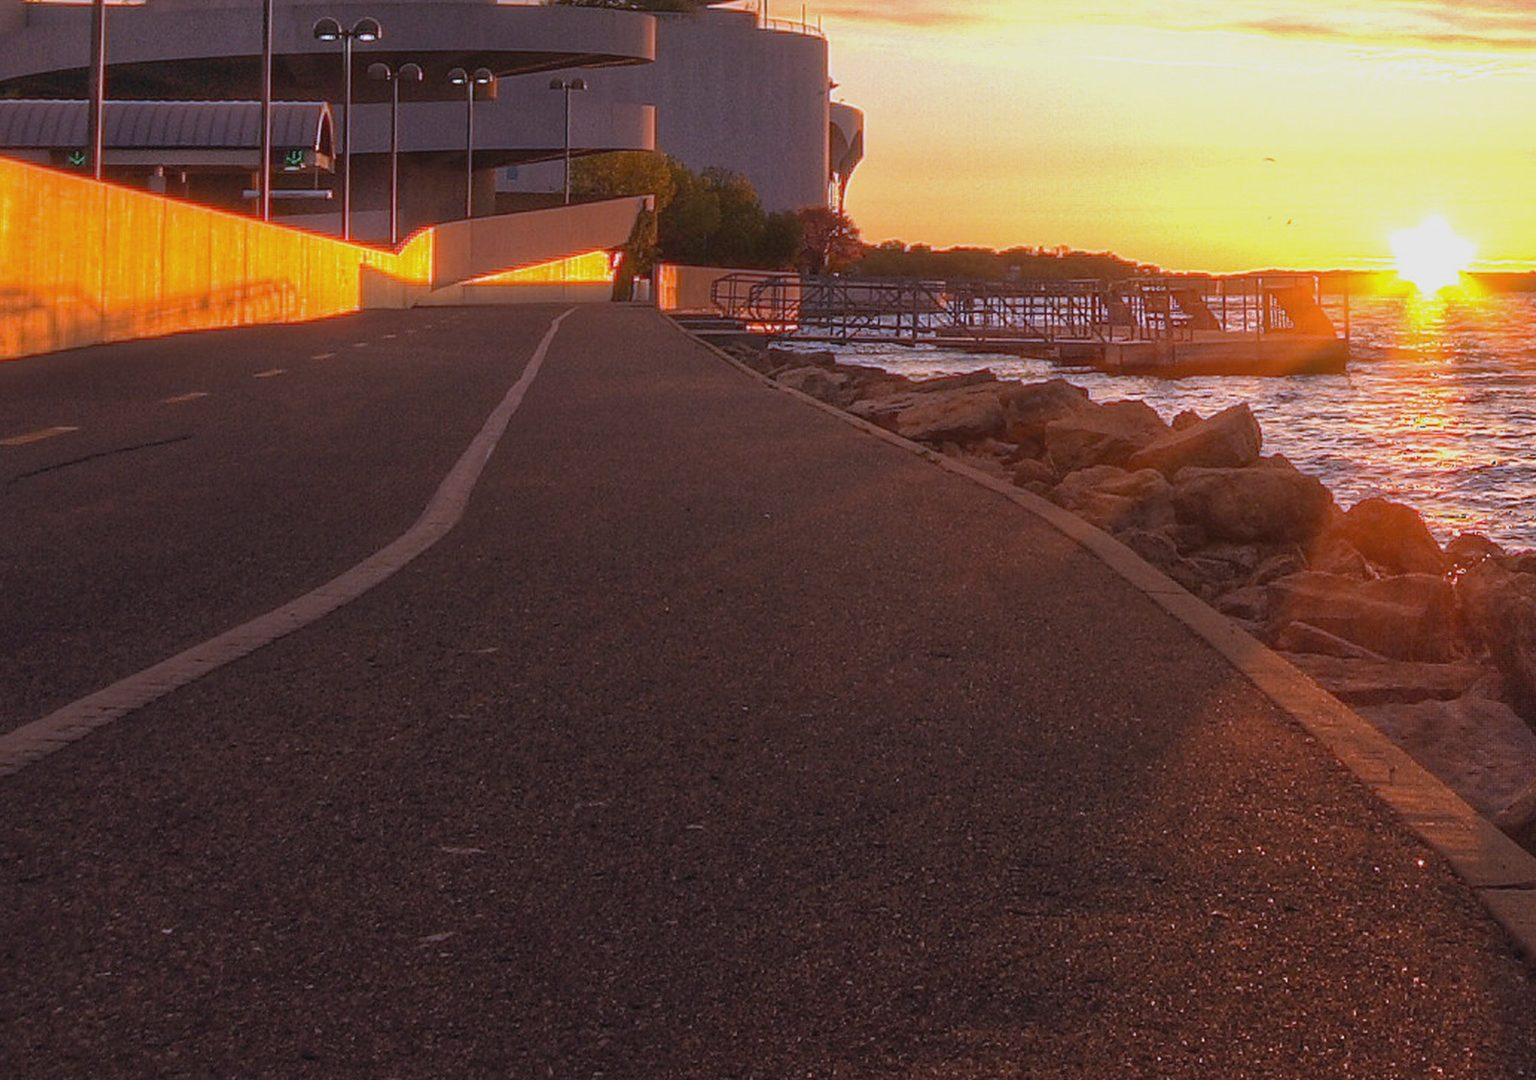 Paved bike path on lakeshore in the foreground with sun rising over horizon in the distance